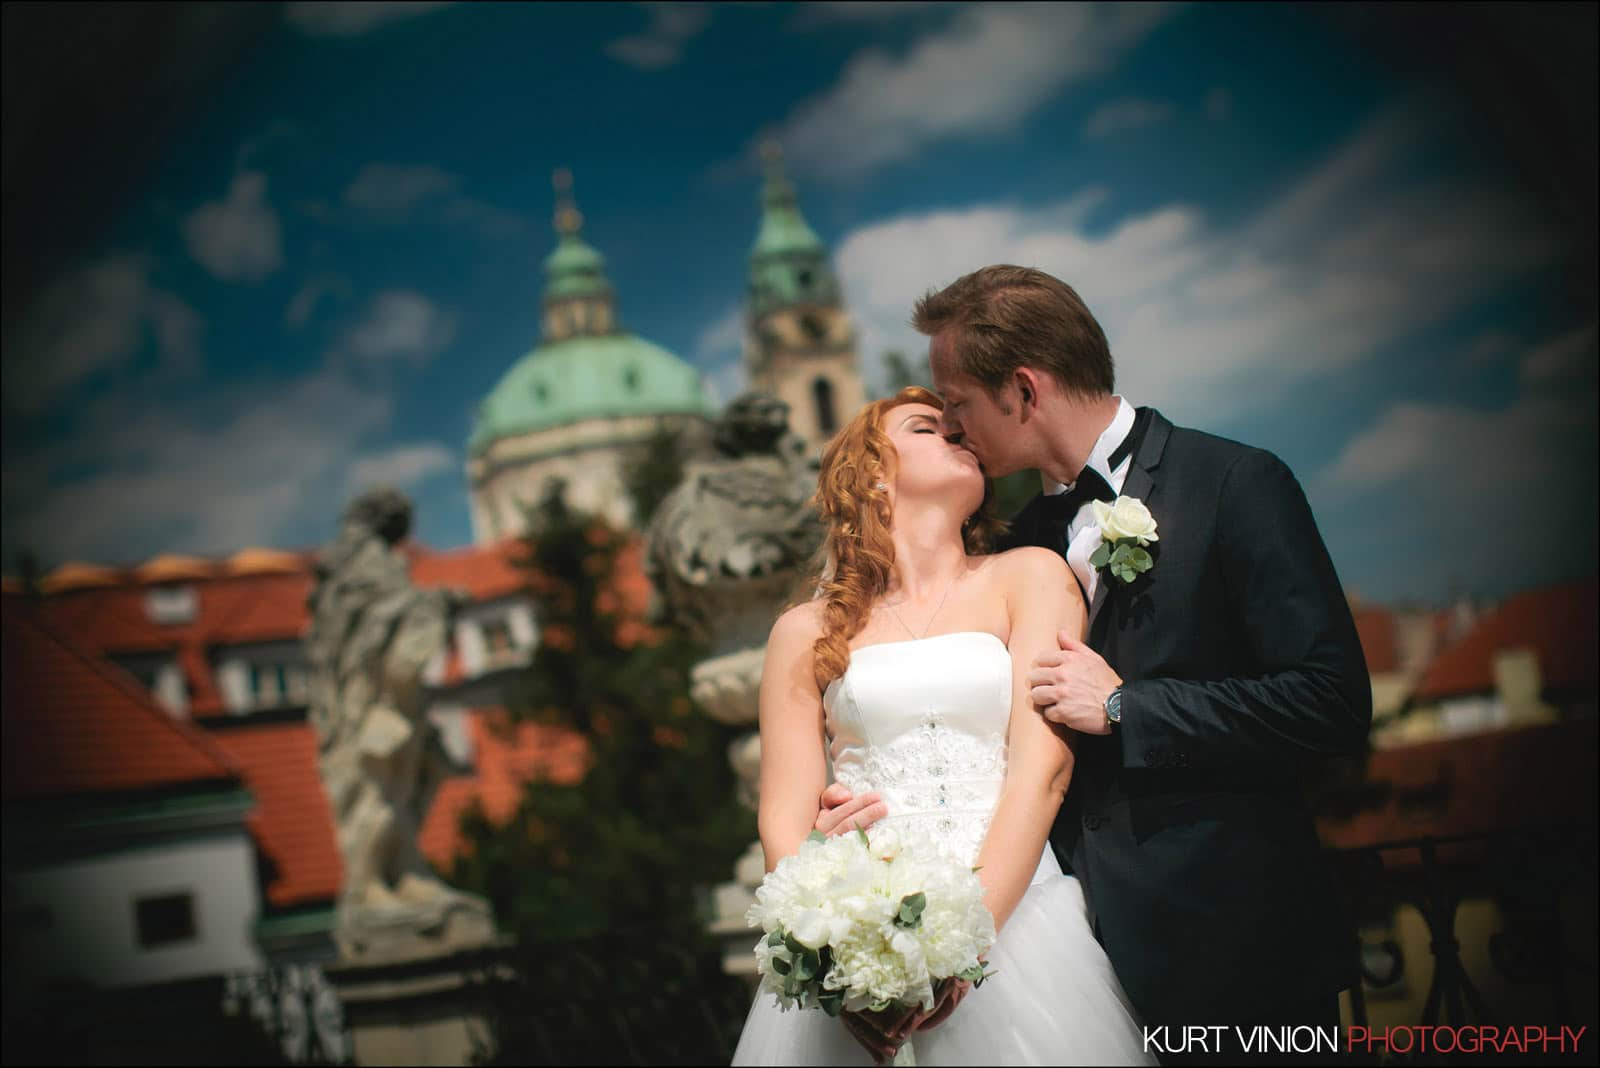 Elopement wedding Prague / Vrtbovska Garden / Polya & Dirk wedding portraits at Vrtba